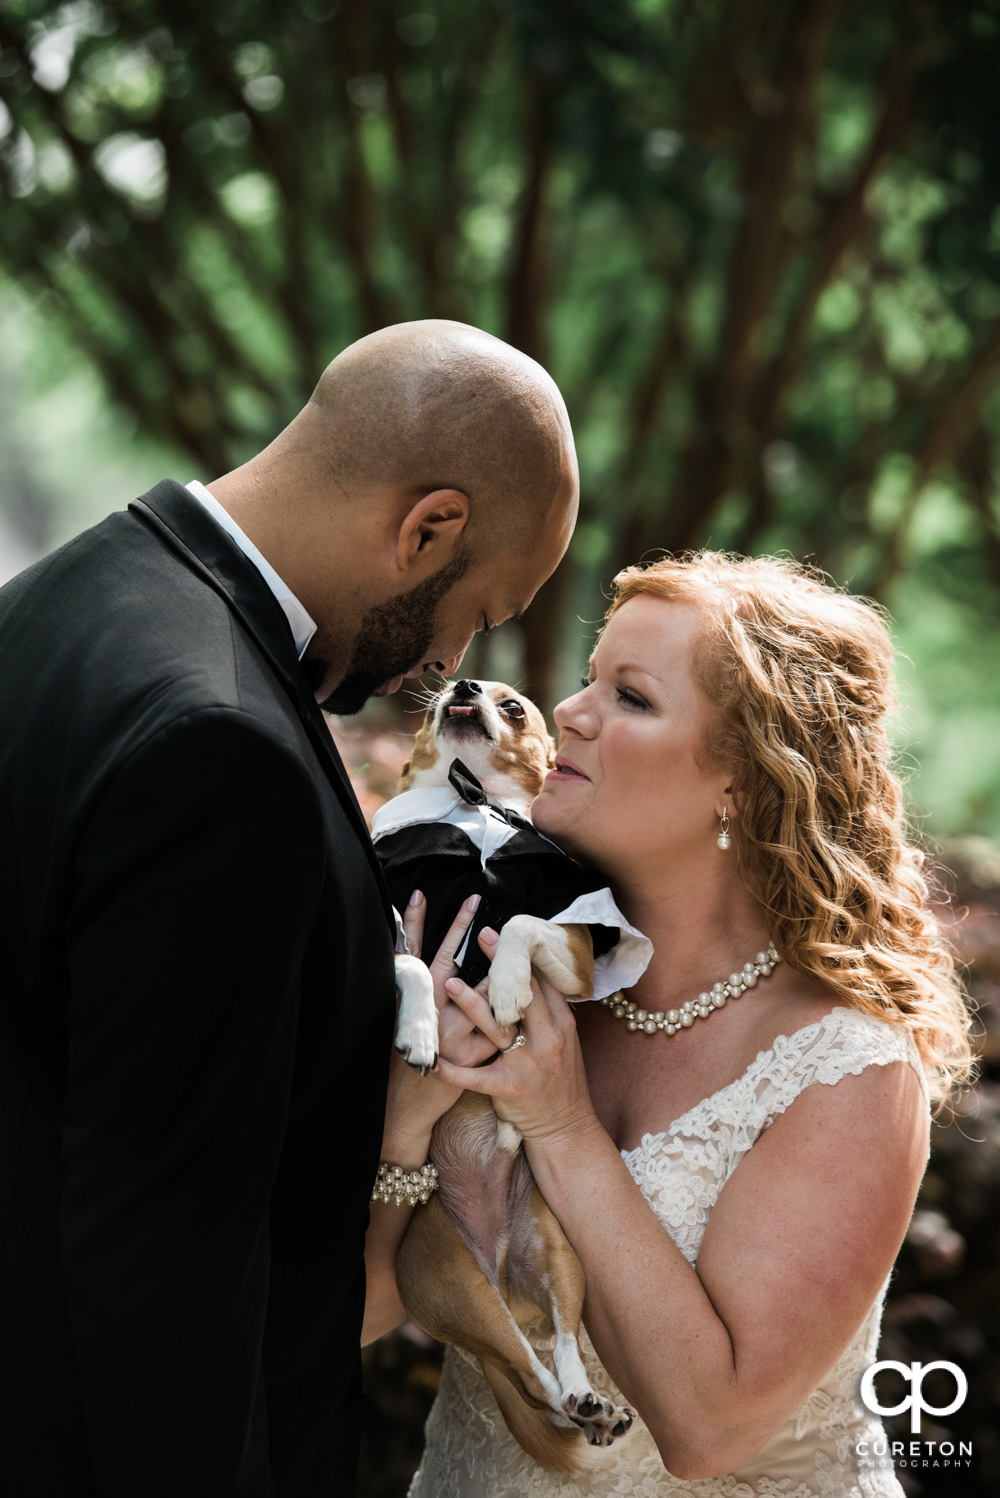 Bride and Groom with their dog before the wedding.